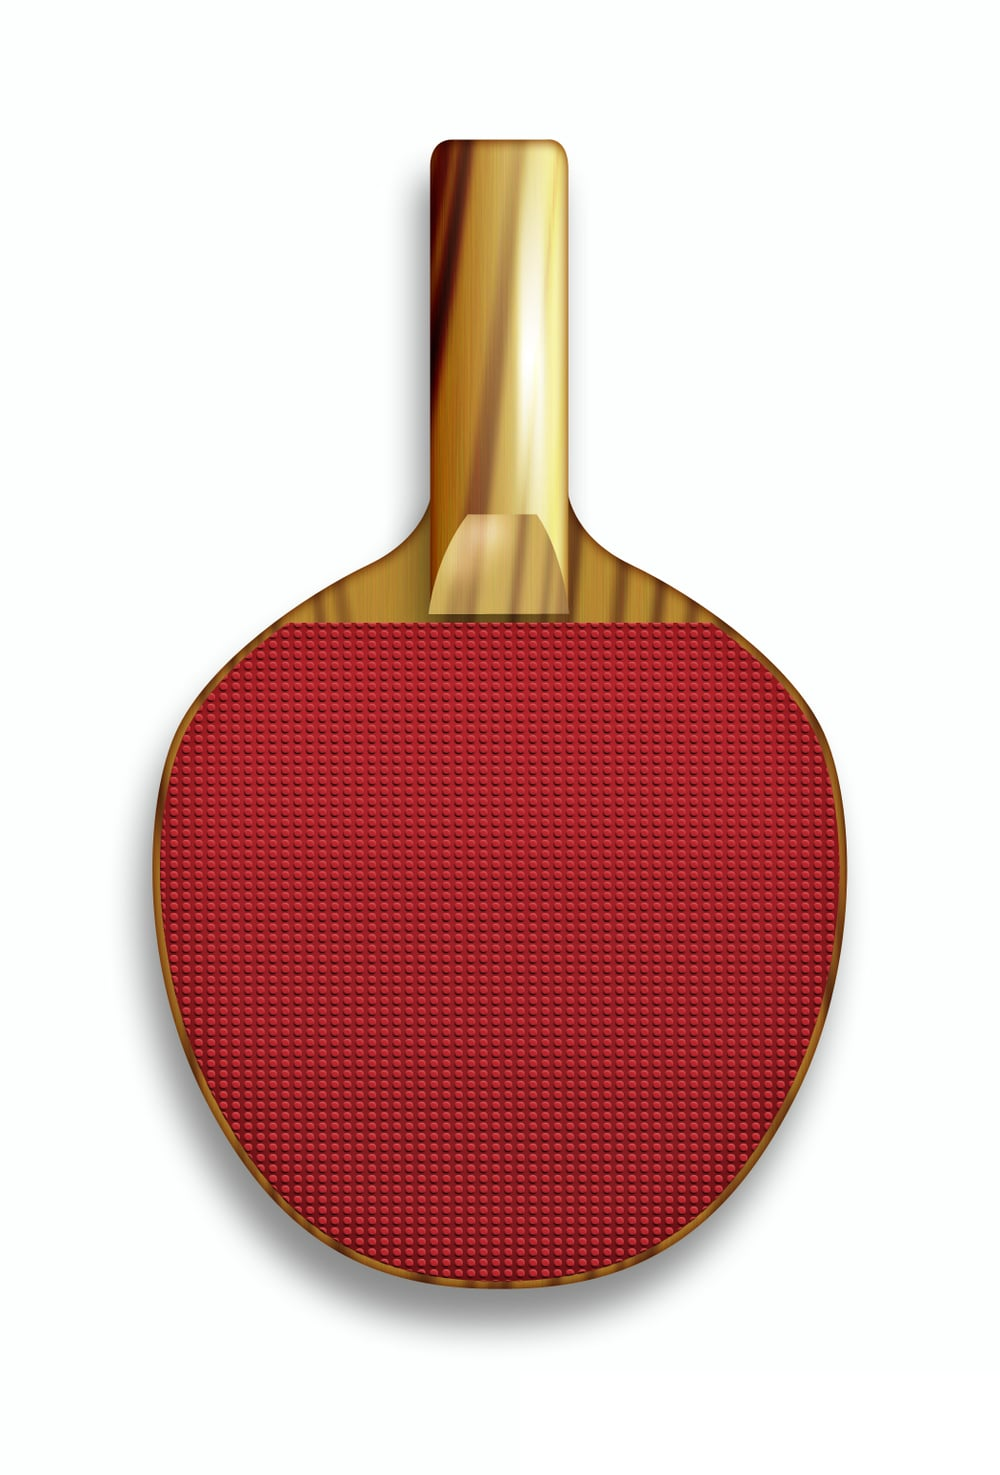 AI Paddle finished.jpg